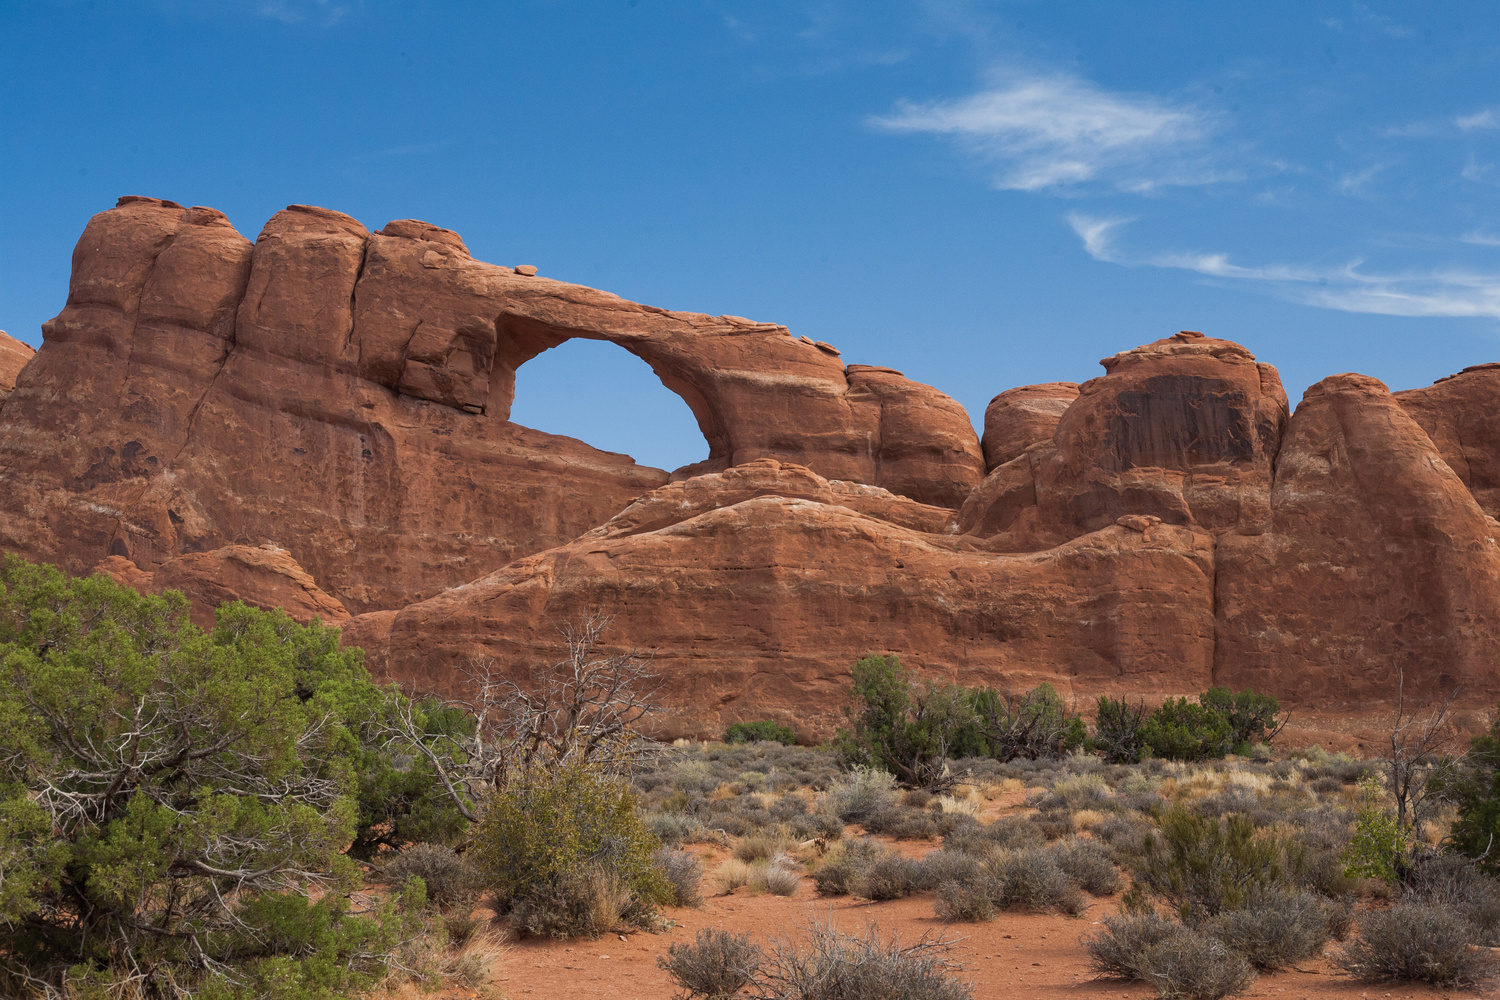 The Arch by Jakeb Miller